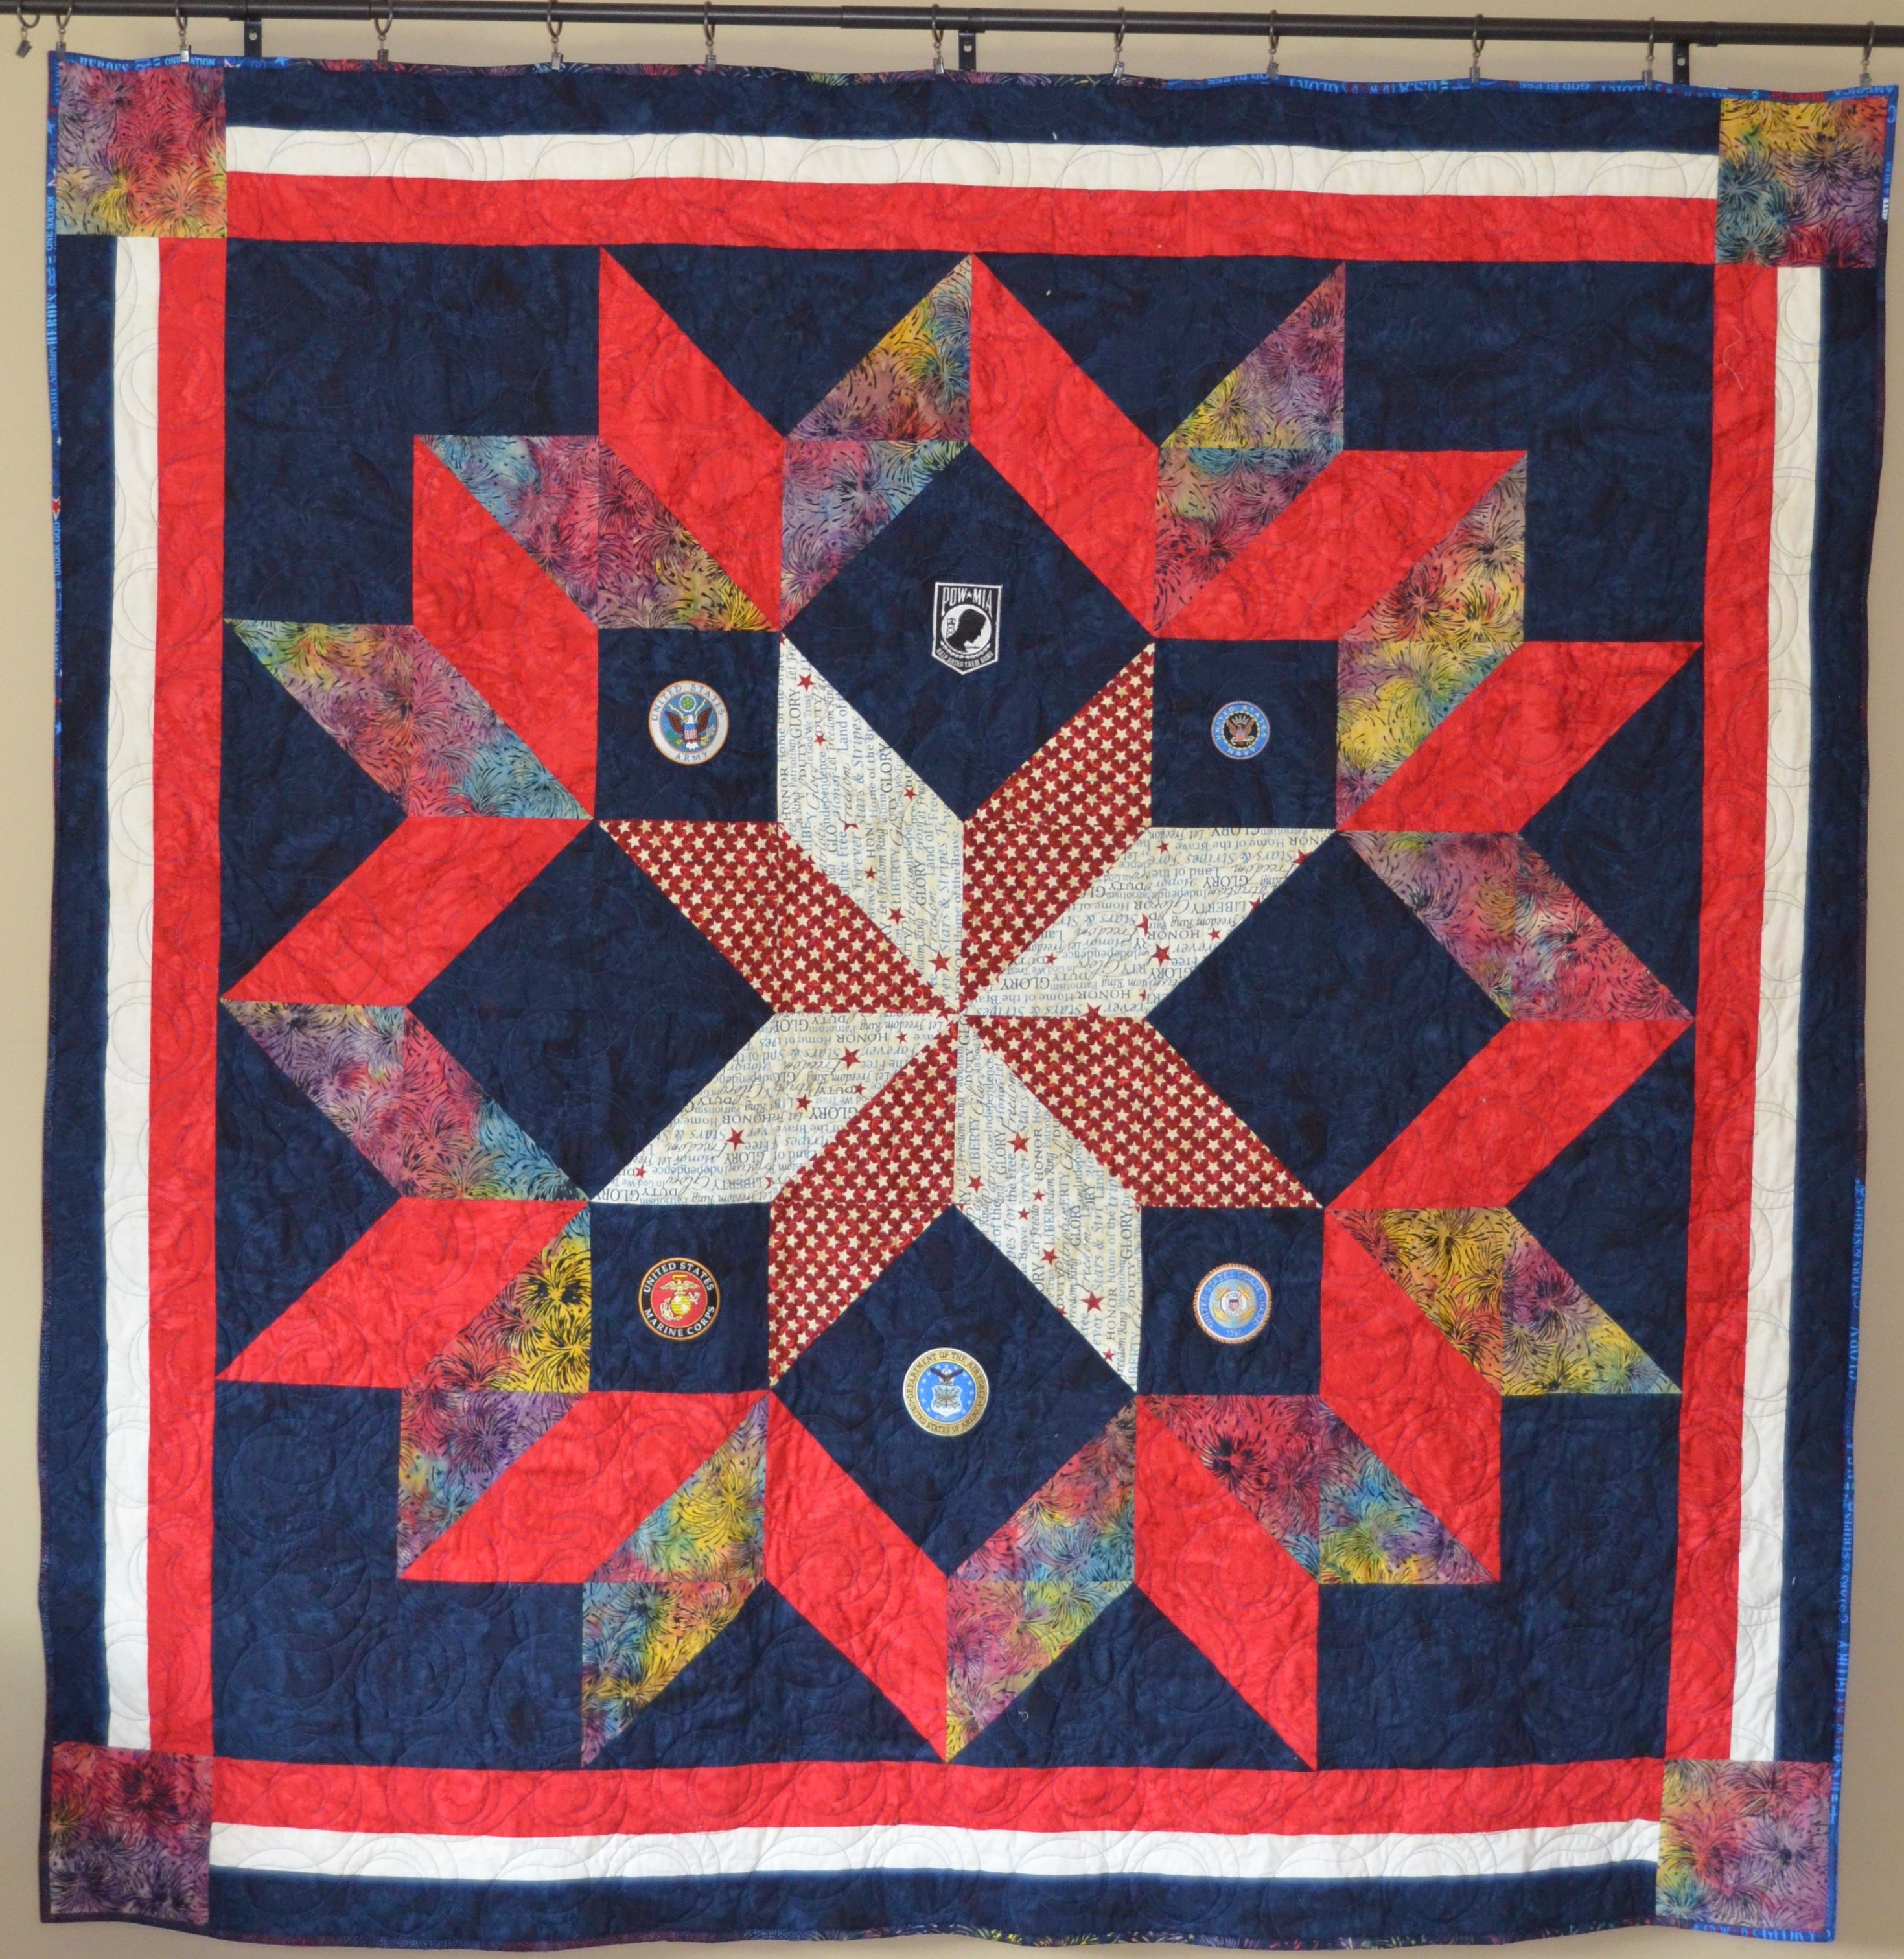 Pin by Adelines Attic Handmade Quilts on Veteran's Board